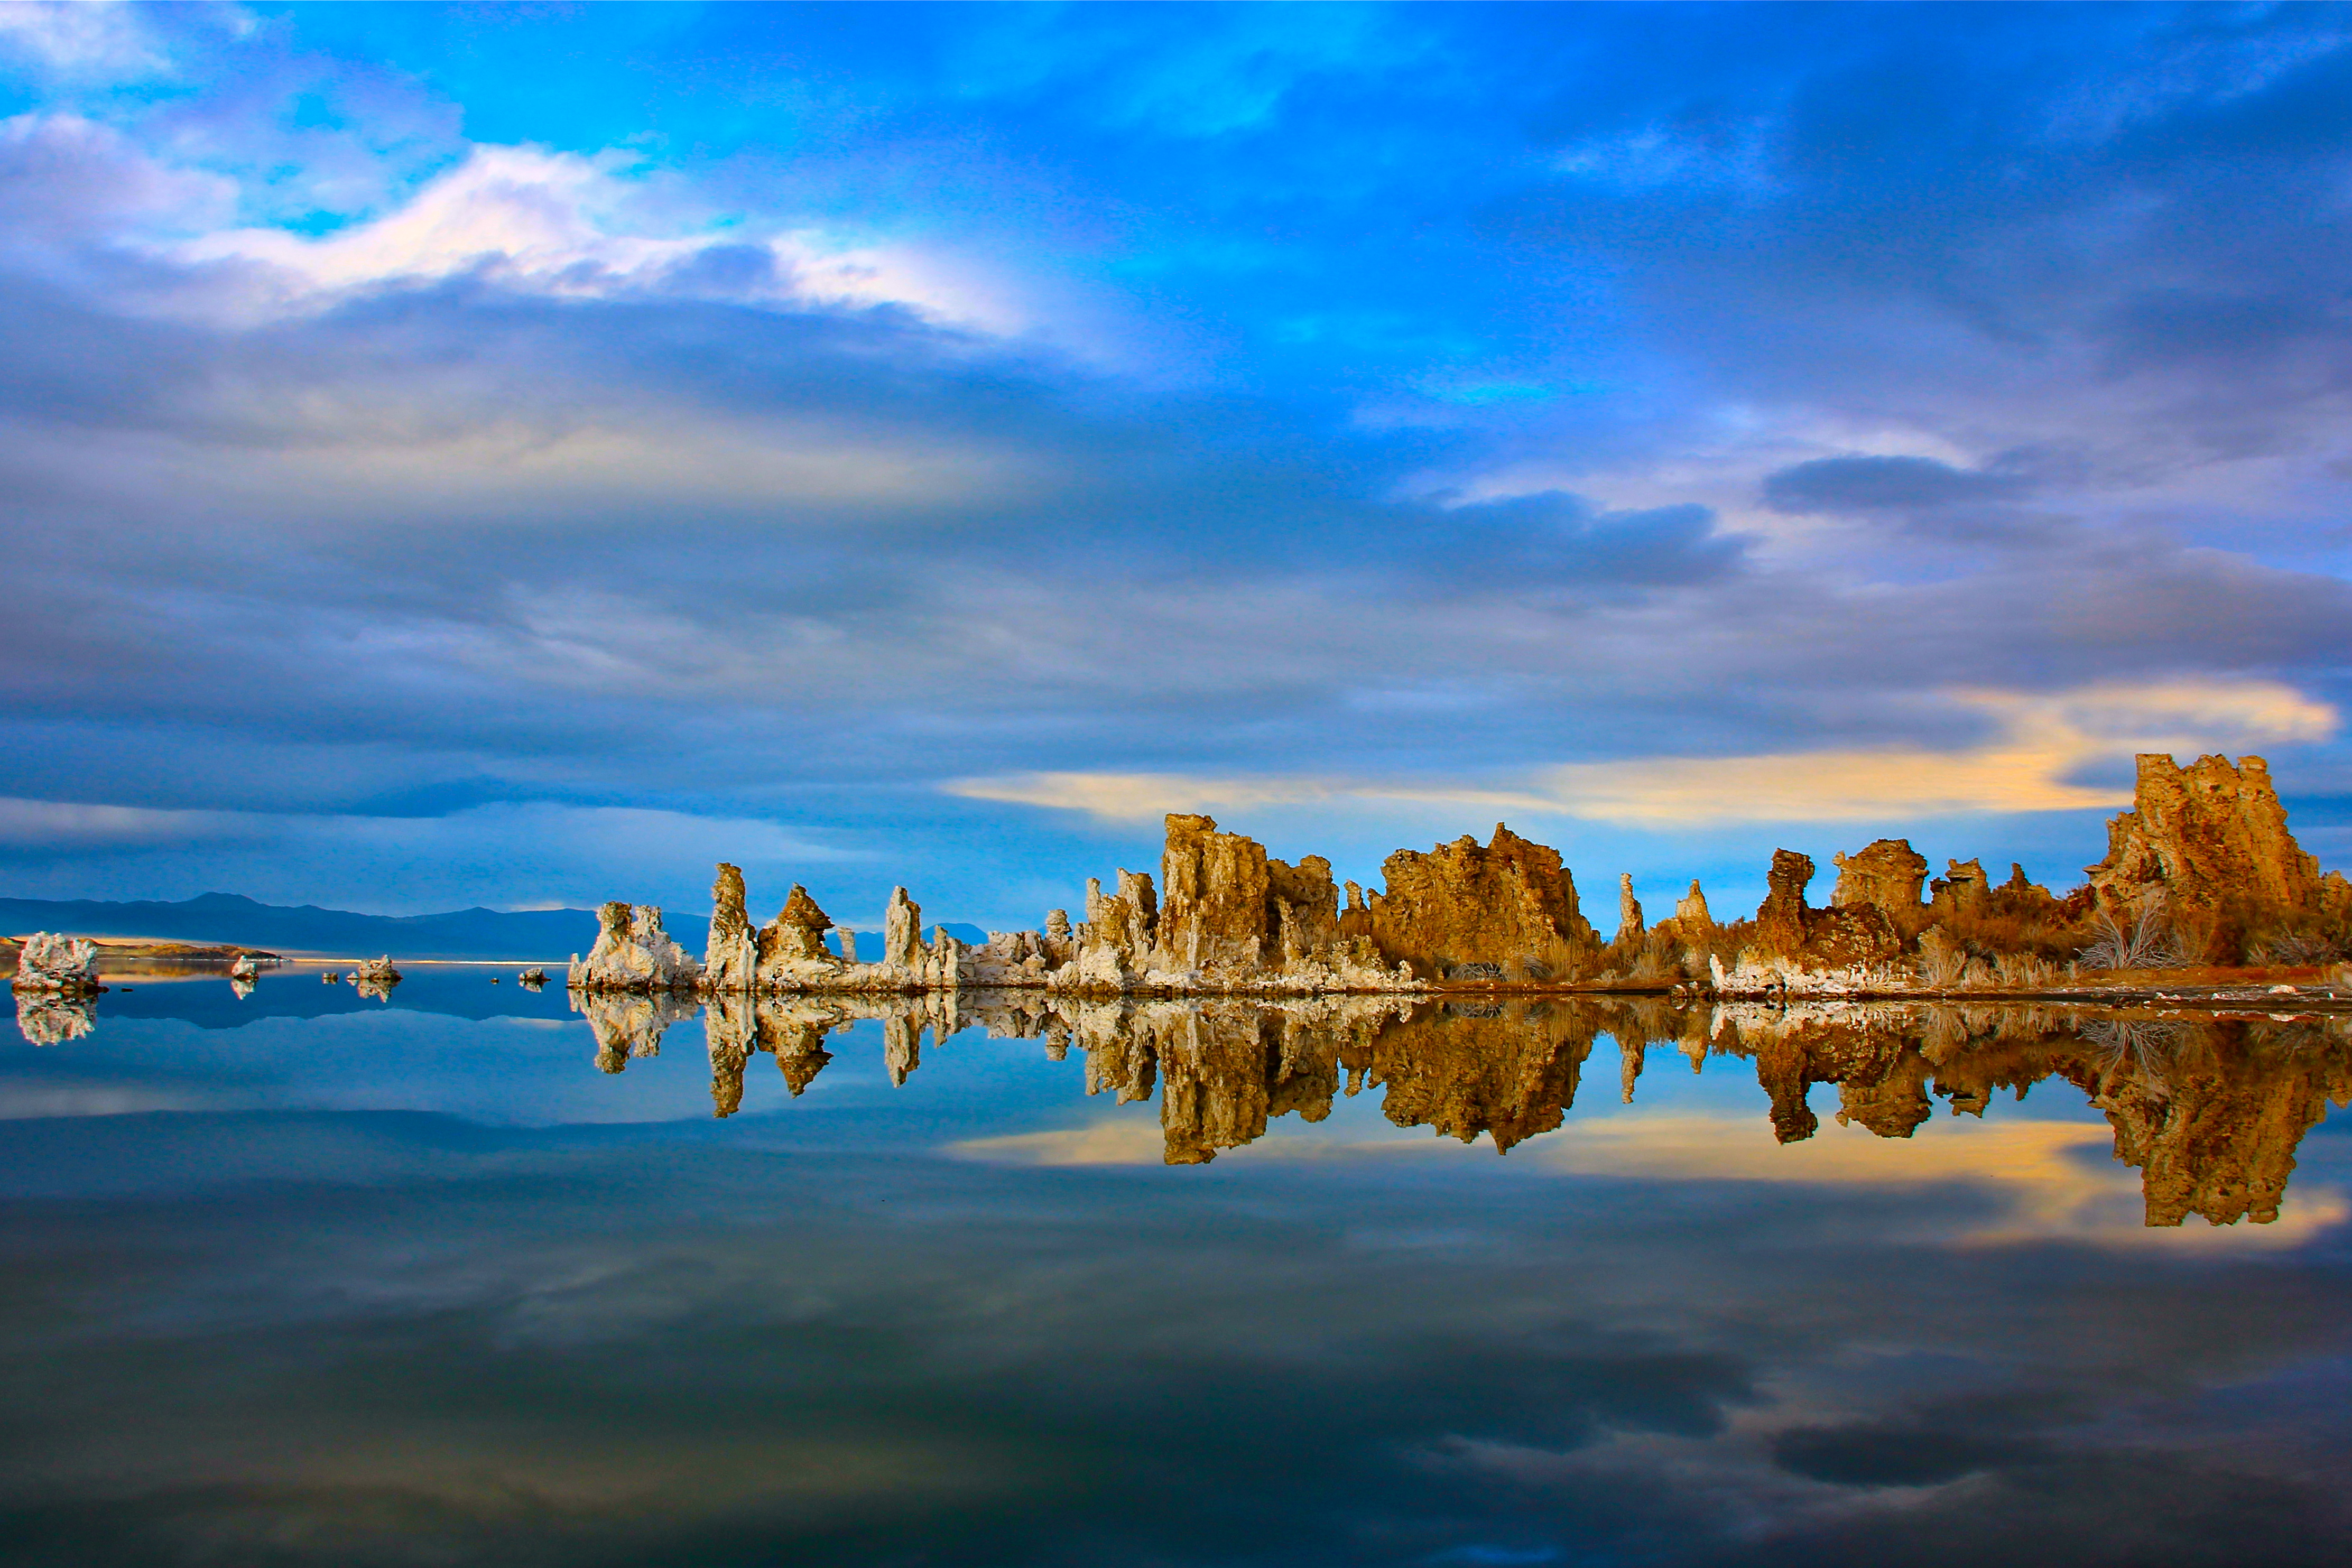 virtual field trip to mono lake © 2018 capitol preservation board 350 north state street, 120 state capitol, salt lake city, utah 84114 contact us - directions.